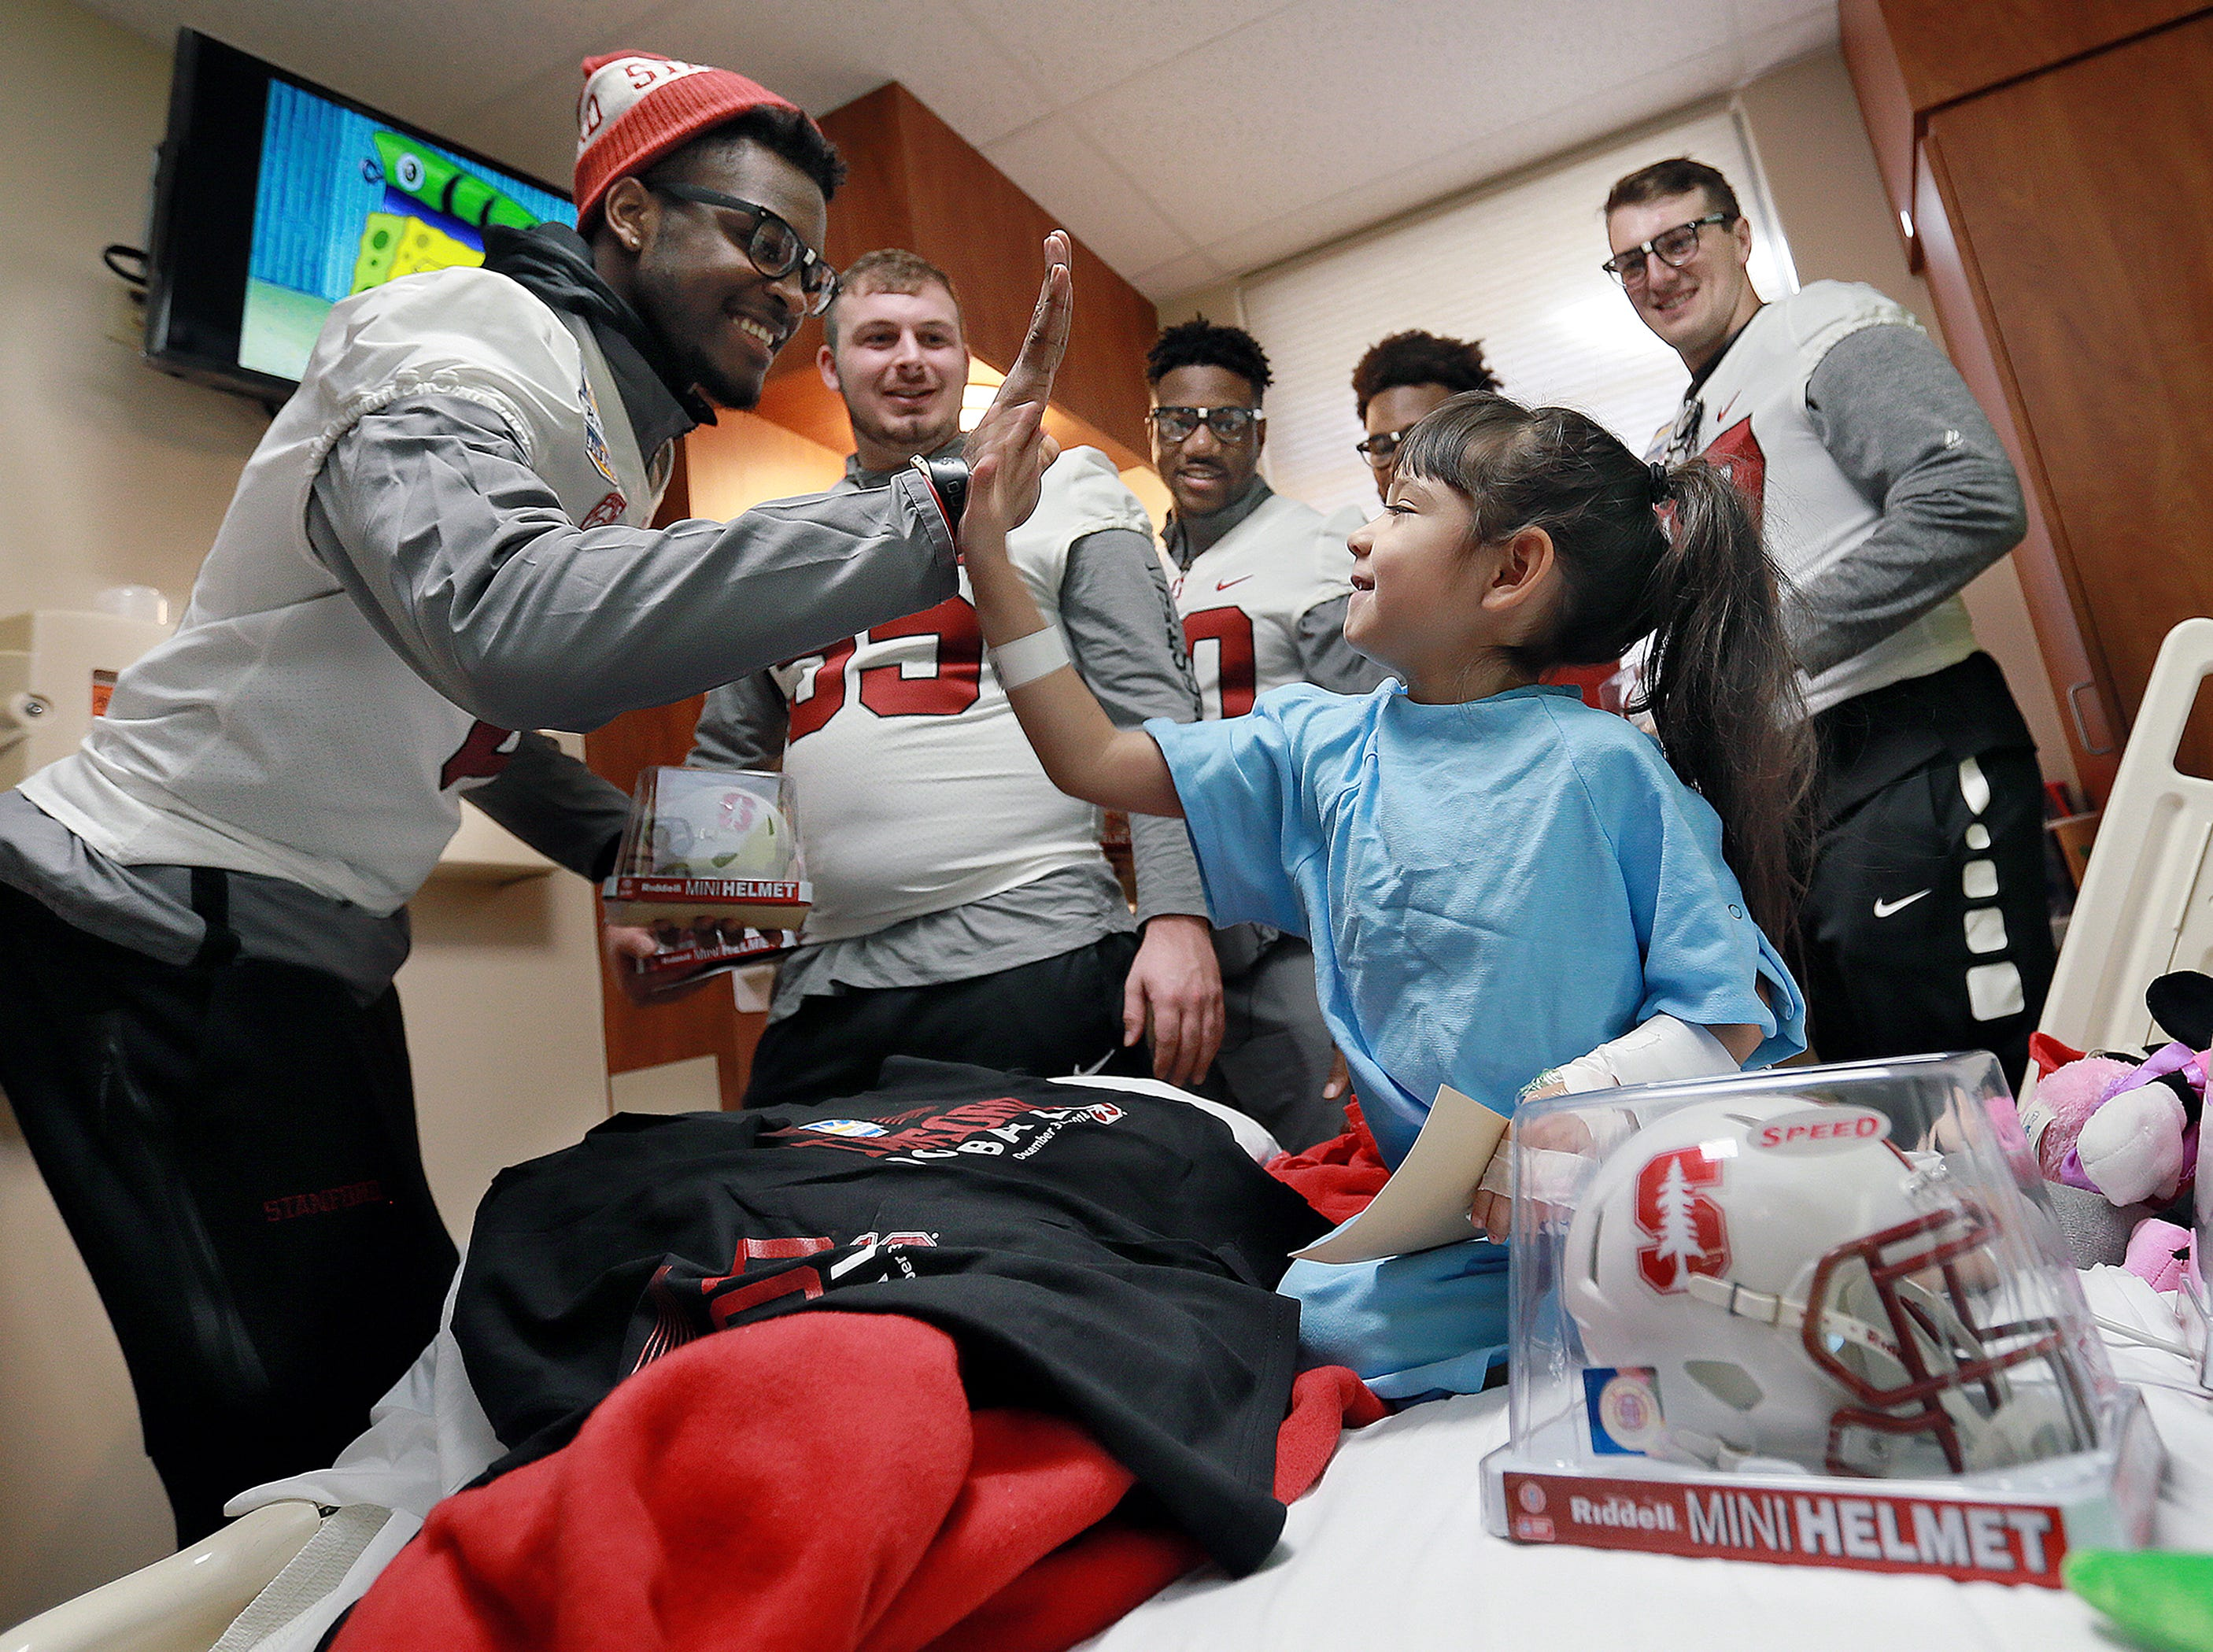 Bella Valverde, 5, gives Stanford junior wide receiver Donald Stewart a high five during the team's visit to Providence Children's Hospital Sunday as Pitt players visit kids at El Paso Children's Hospital. The teams face off New Year's Eve at noon in the Hyundai Sun Bowl.